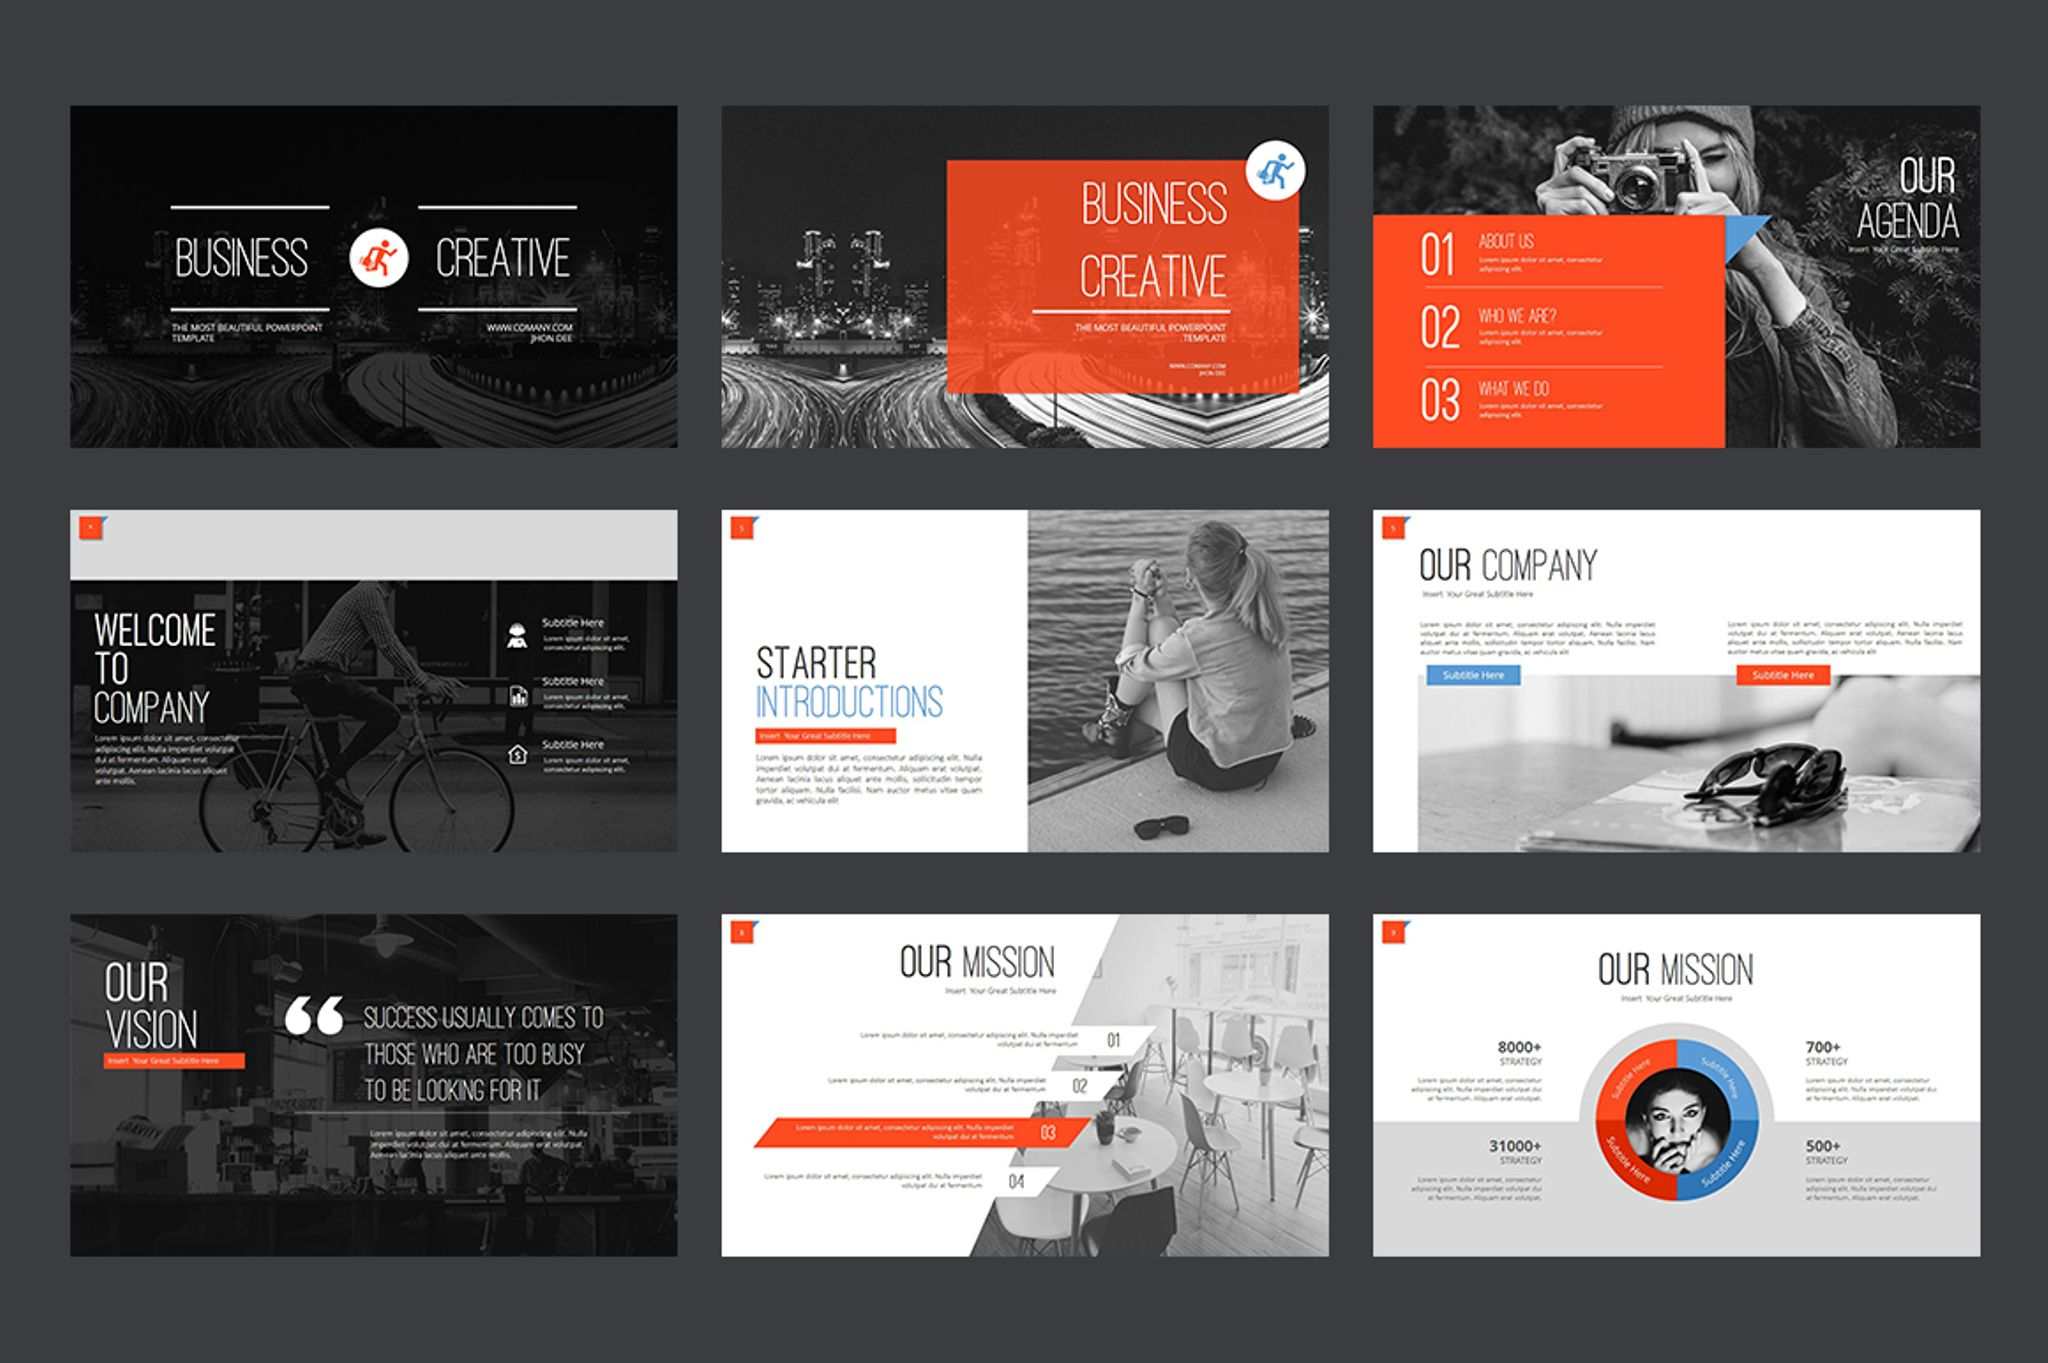 Marketing agency powerpoint template 64617 business creative powerpoint template big screenshot toneelgroepblik Images